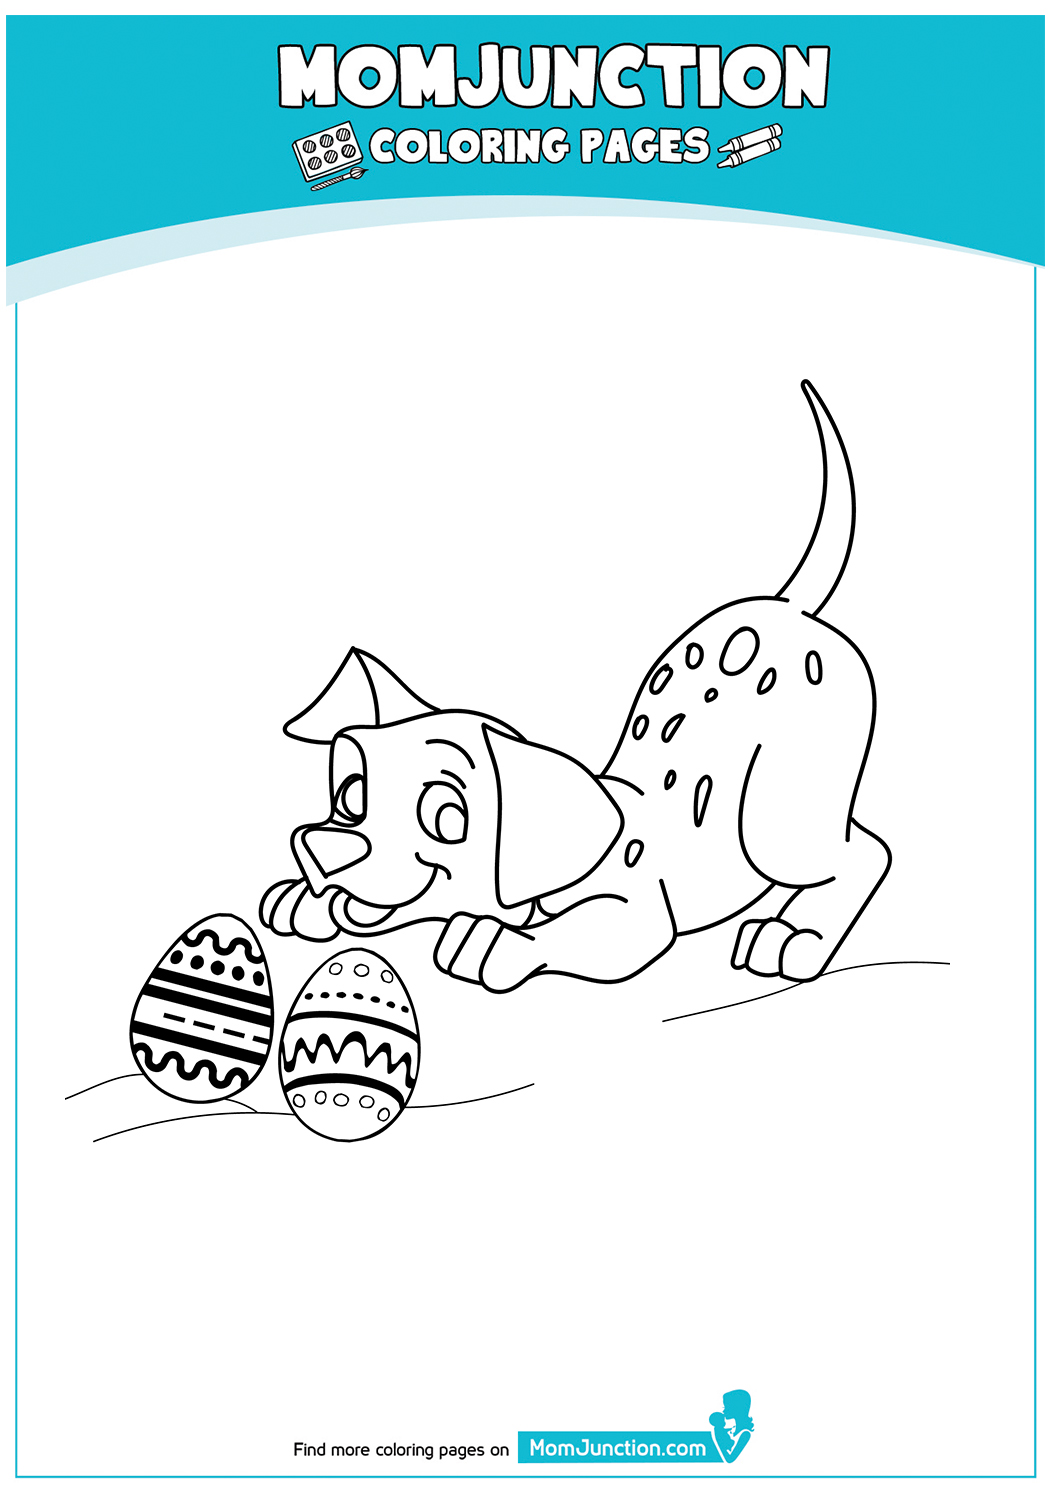 The-Dalmatian-and-Easter-egg-17